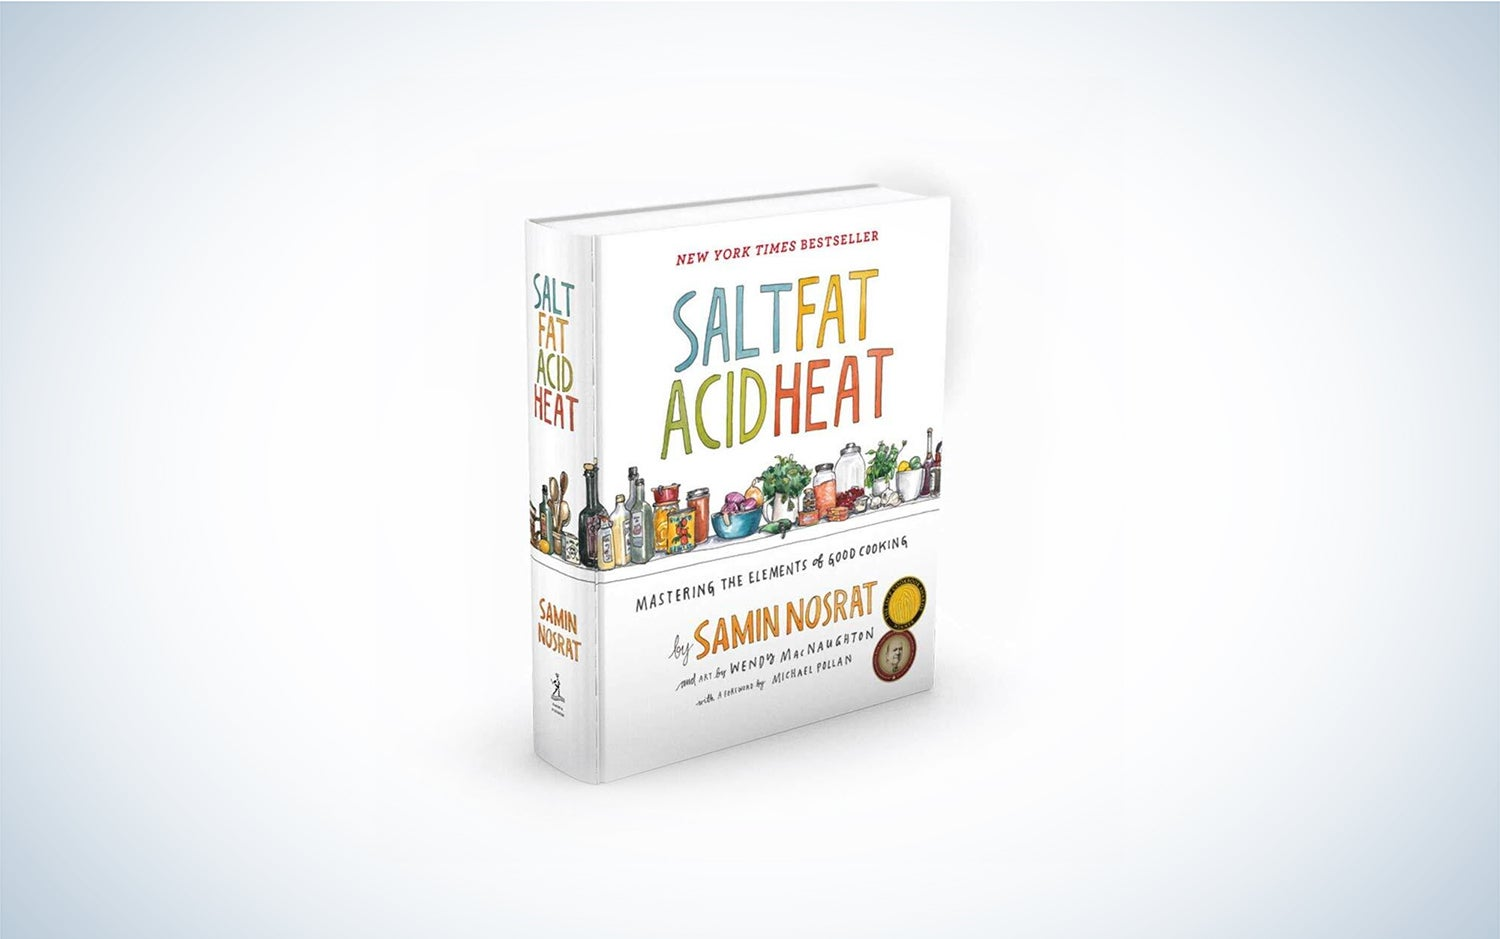 Salt, Fat, Acid, Heat: Mastering the Elements of Good Cooking ($20.98